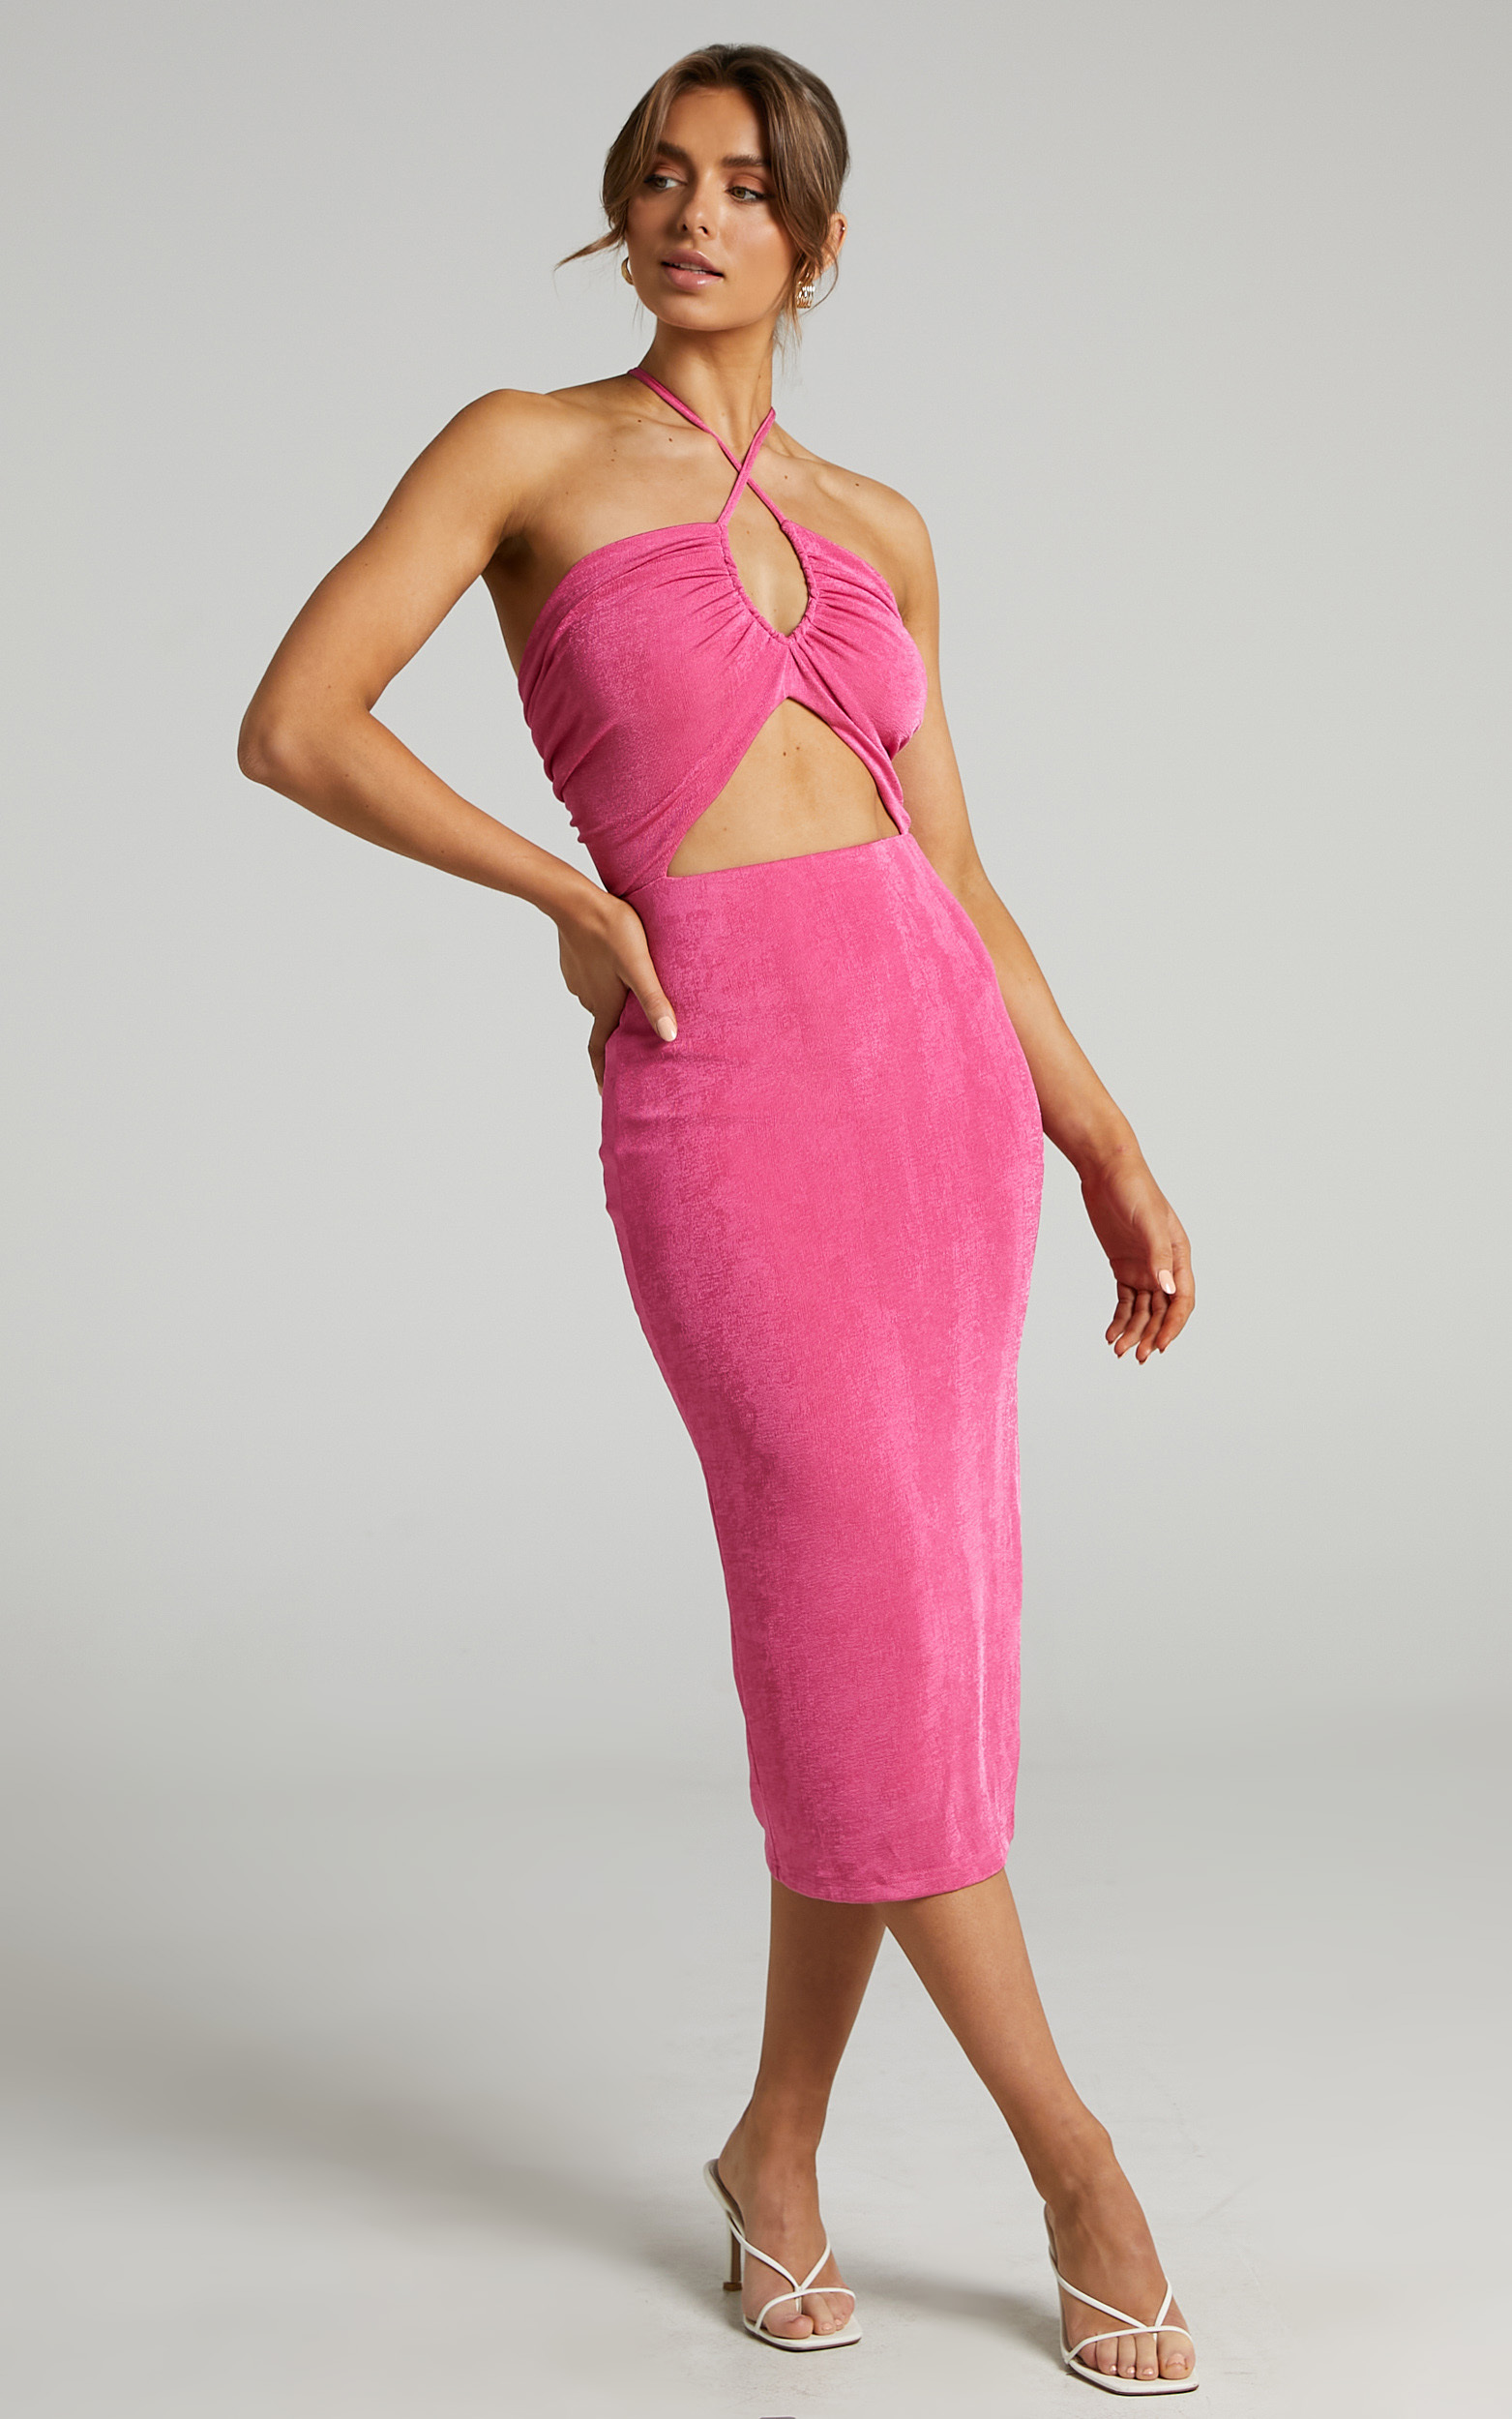 Bamba Cross Front Cut Out Midi Dress in Hot Pink - 06, PNK1, hi-res image number null